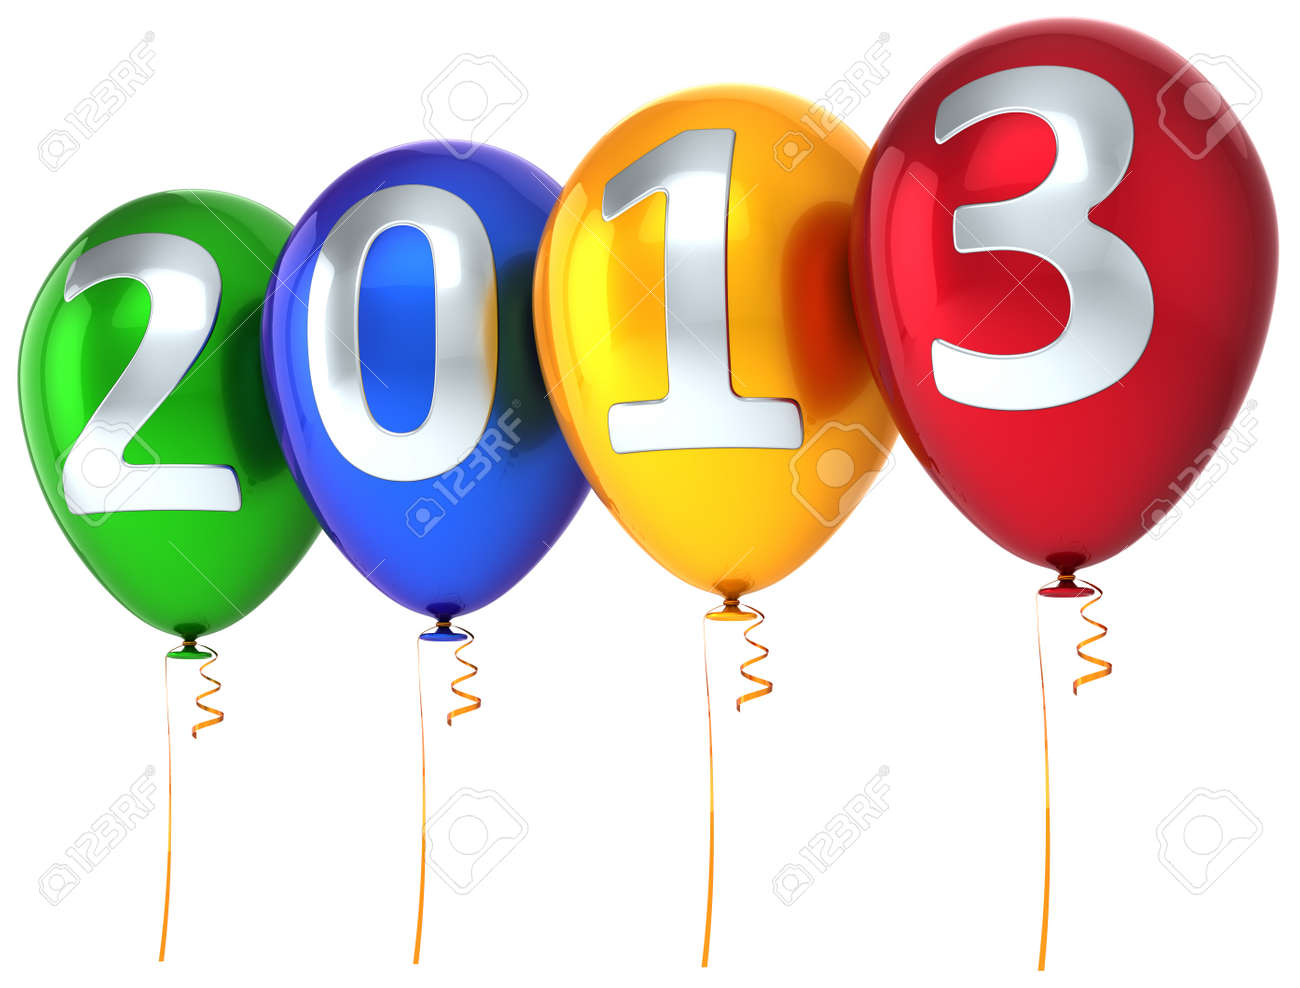 New Year 2013 balloons party celebrate decoration  New Year s Eve calendar date beautiful greeting card  Detailed 3d render Stock Photo - 16177834